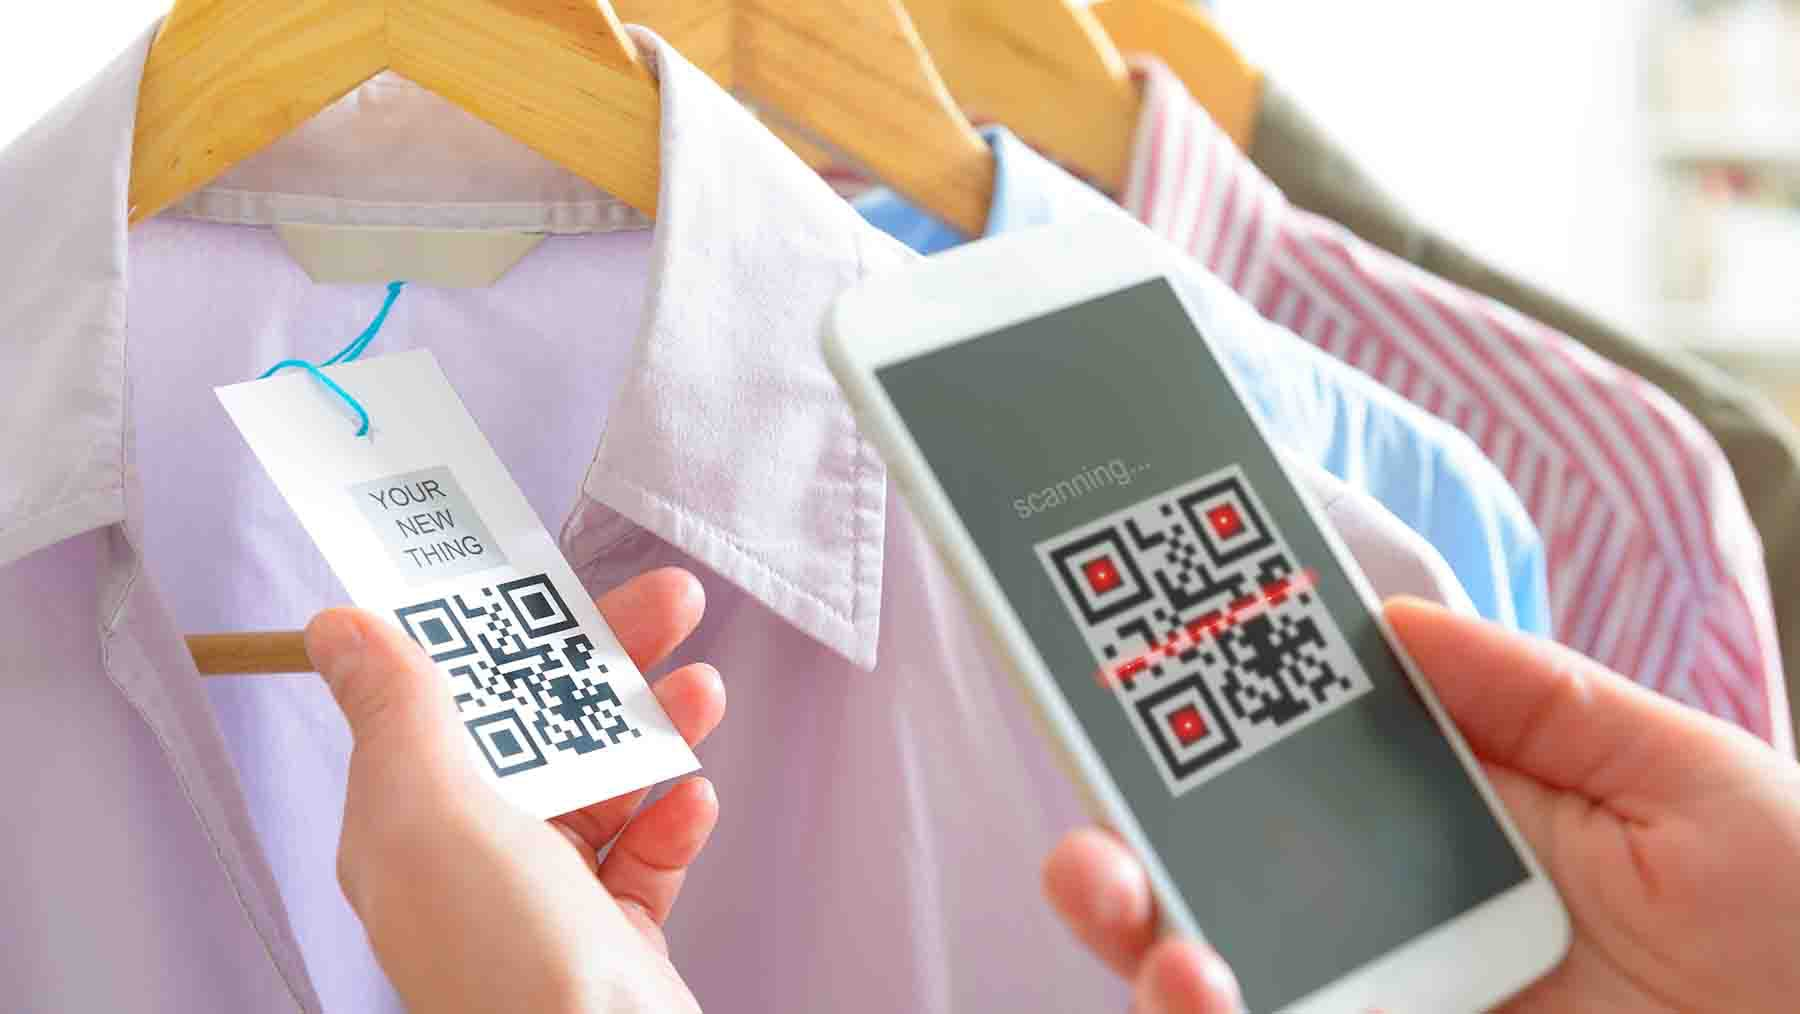 Shopper scanning a product's QR code | Source: Shutterstock